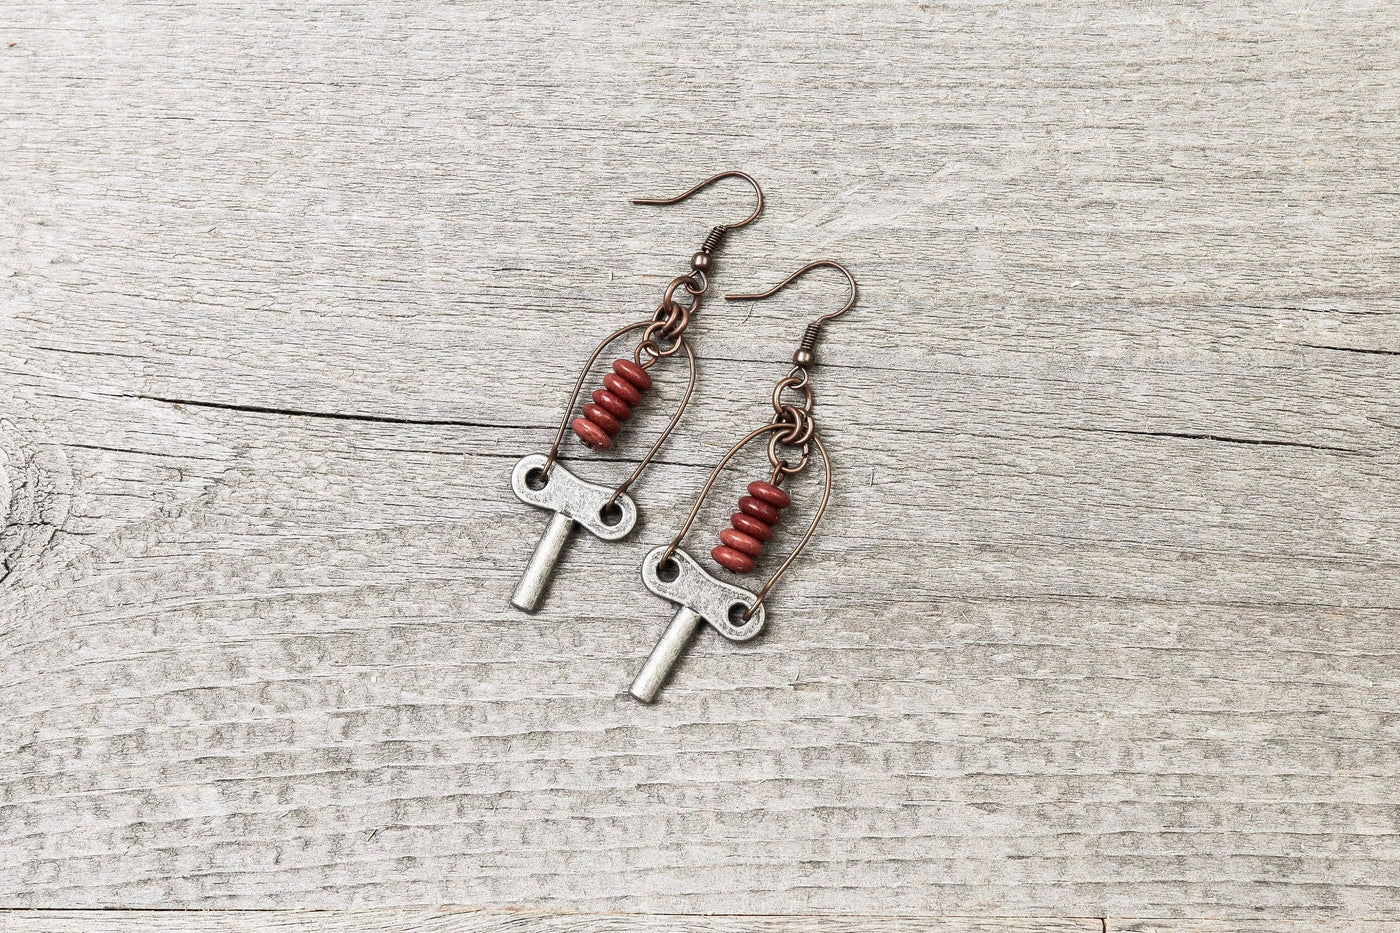 Vintage Key Boho Earrings - Earthy Red Metal Stone Dangle Cute Antique Silver Boho Gypsy Hippie Unique Bohemian Rustic Handmade Jewelry